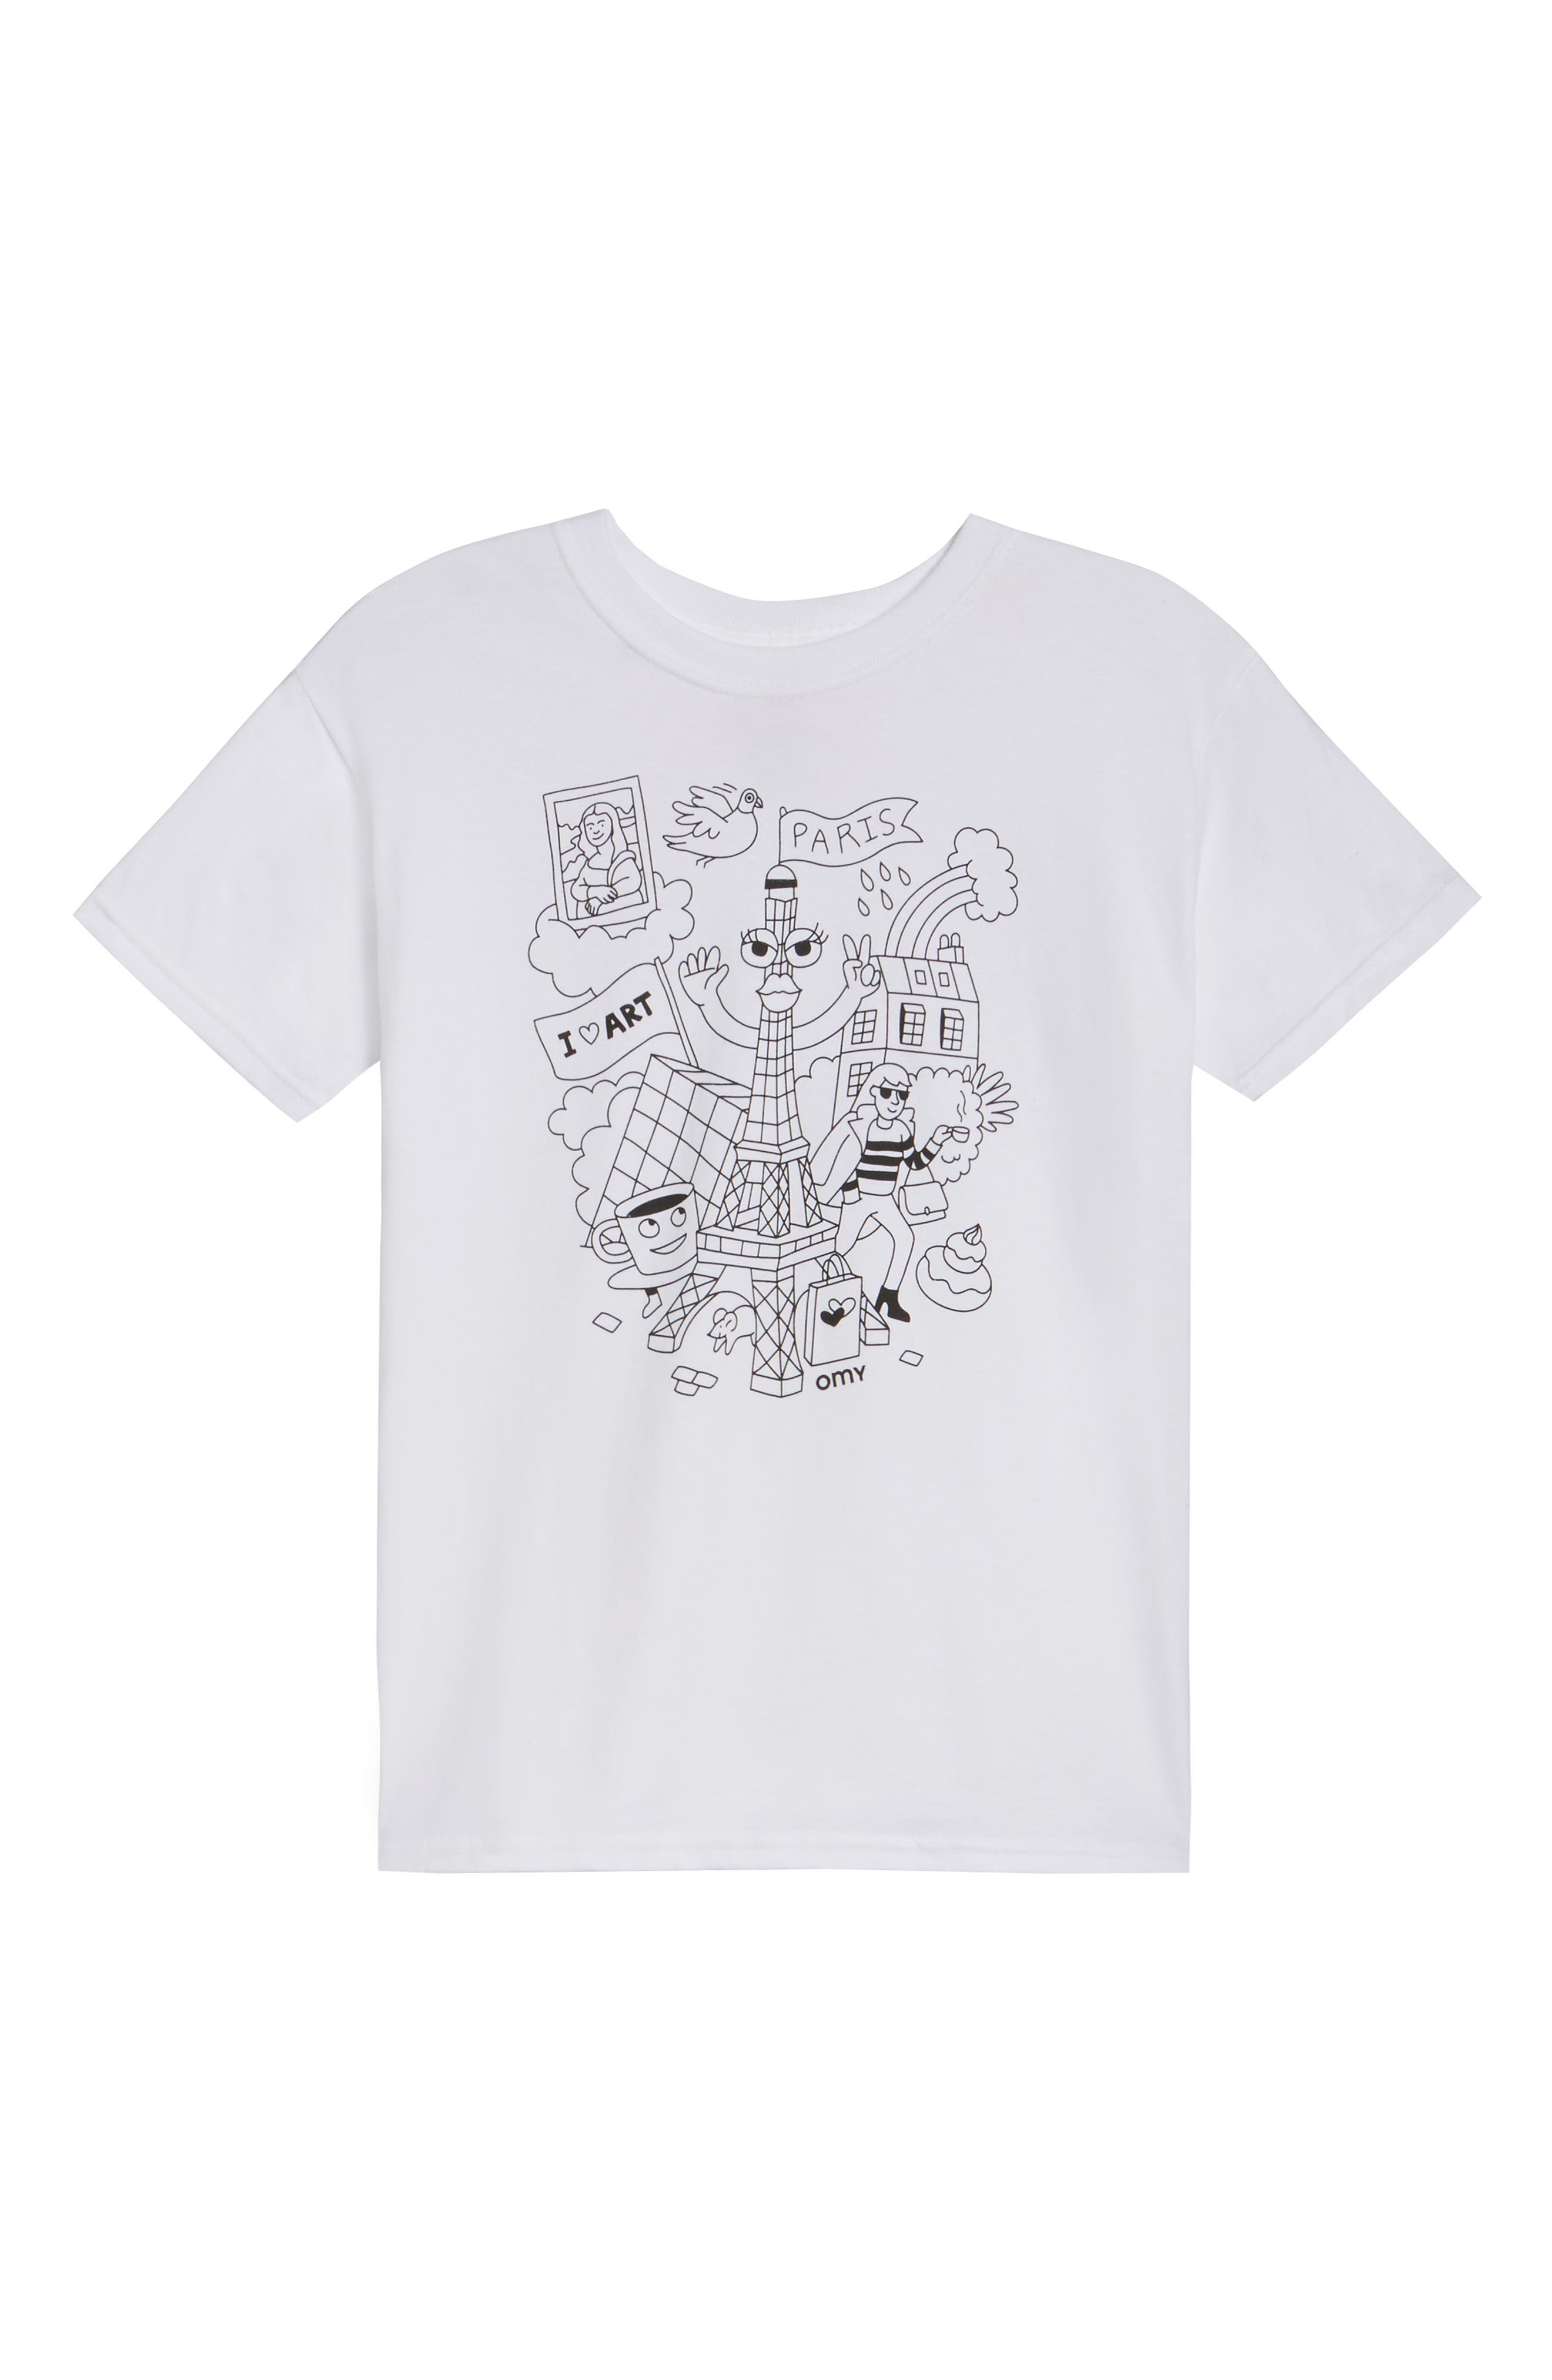 OMY Paris Graphic T-Shirt & Colored Markers Set (Kids)